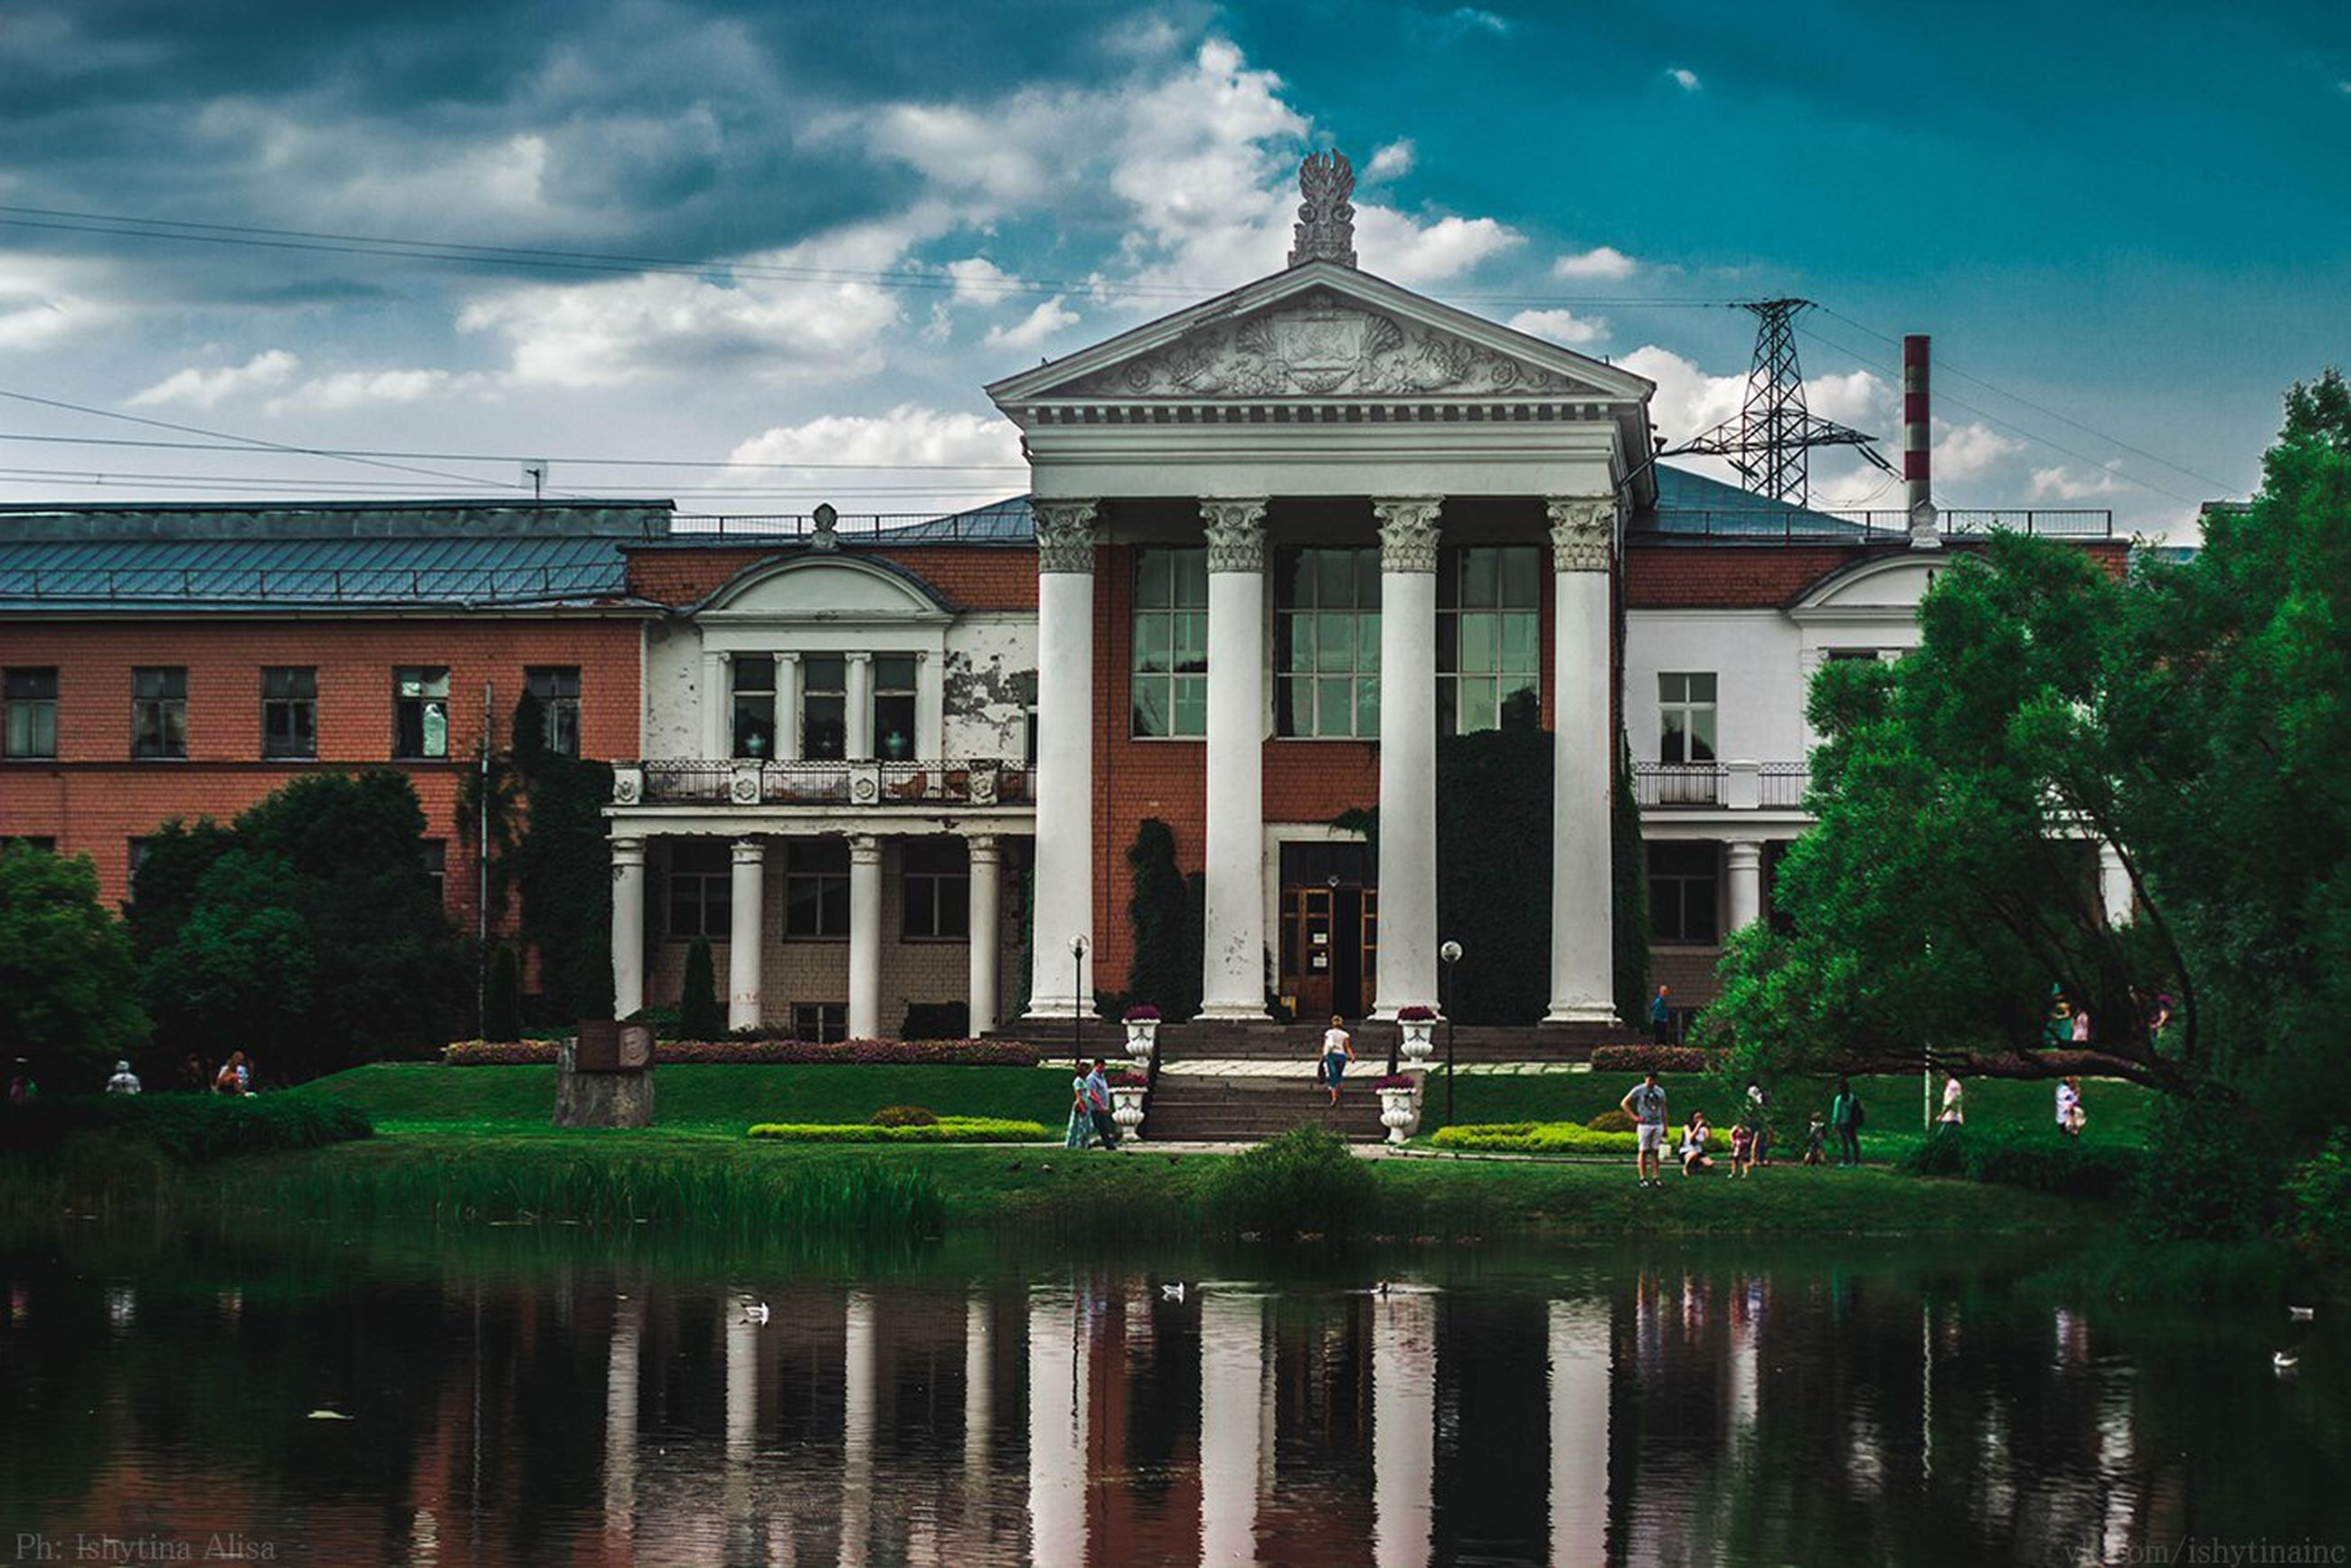 architecture, building exterior, built structure, water, sky, reflection, waterfront, cloud - sky, fountain, pond, cloud, tree, facade, lake, outdoors, river, building, cloudy, no people, day